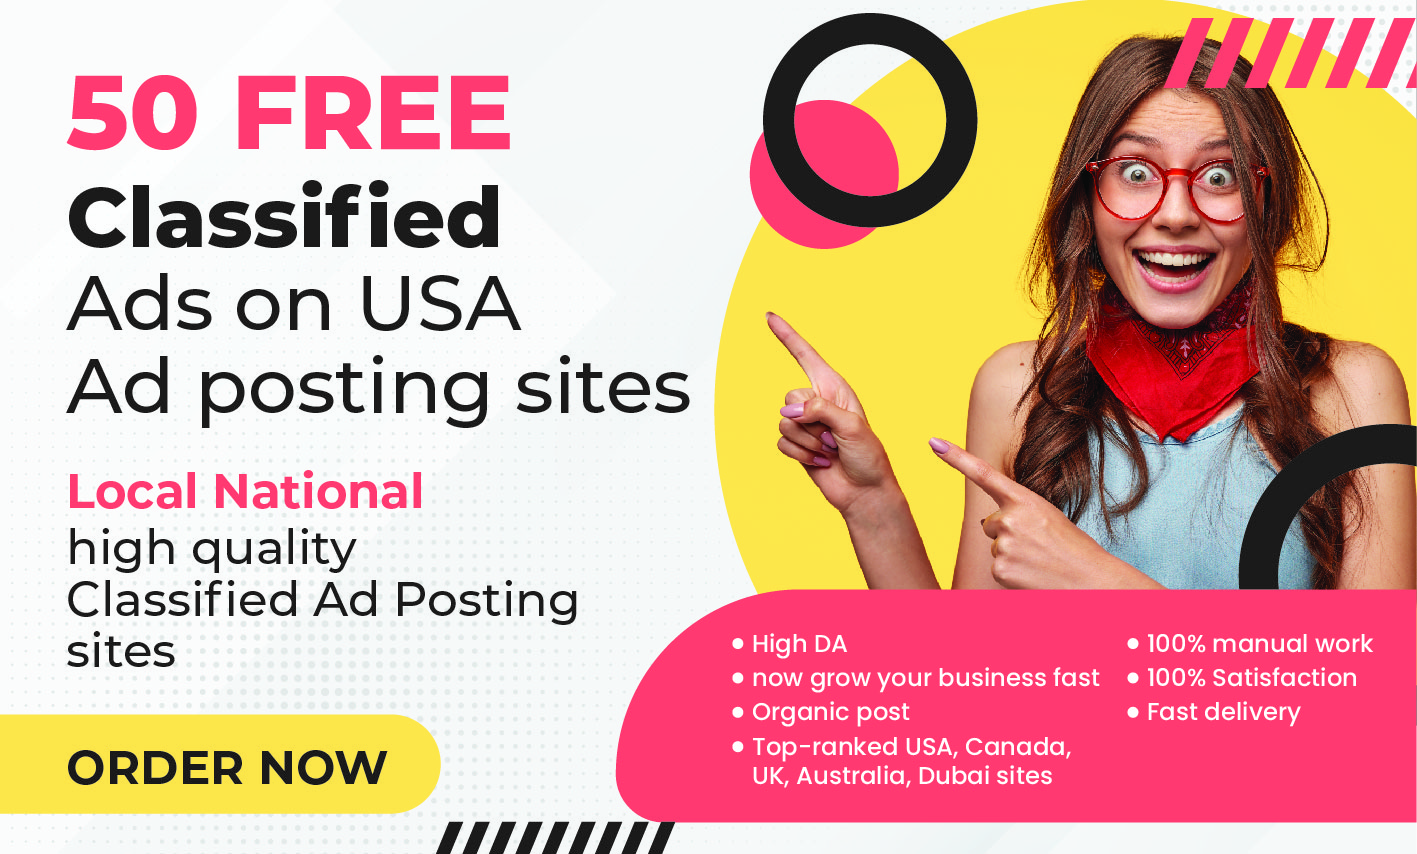 I will be post 50 free classified ads on USA ad posting sites